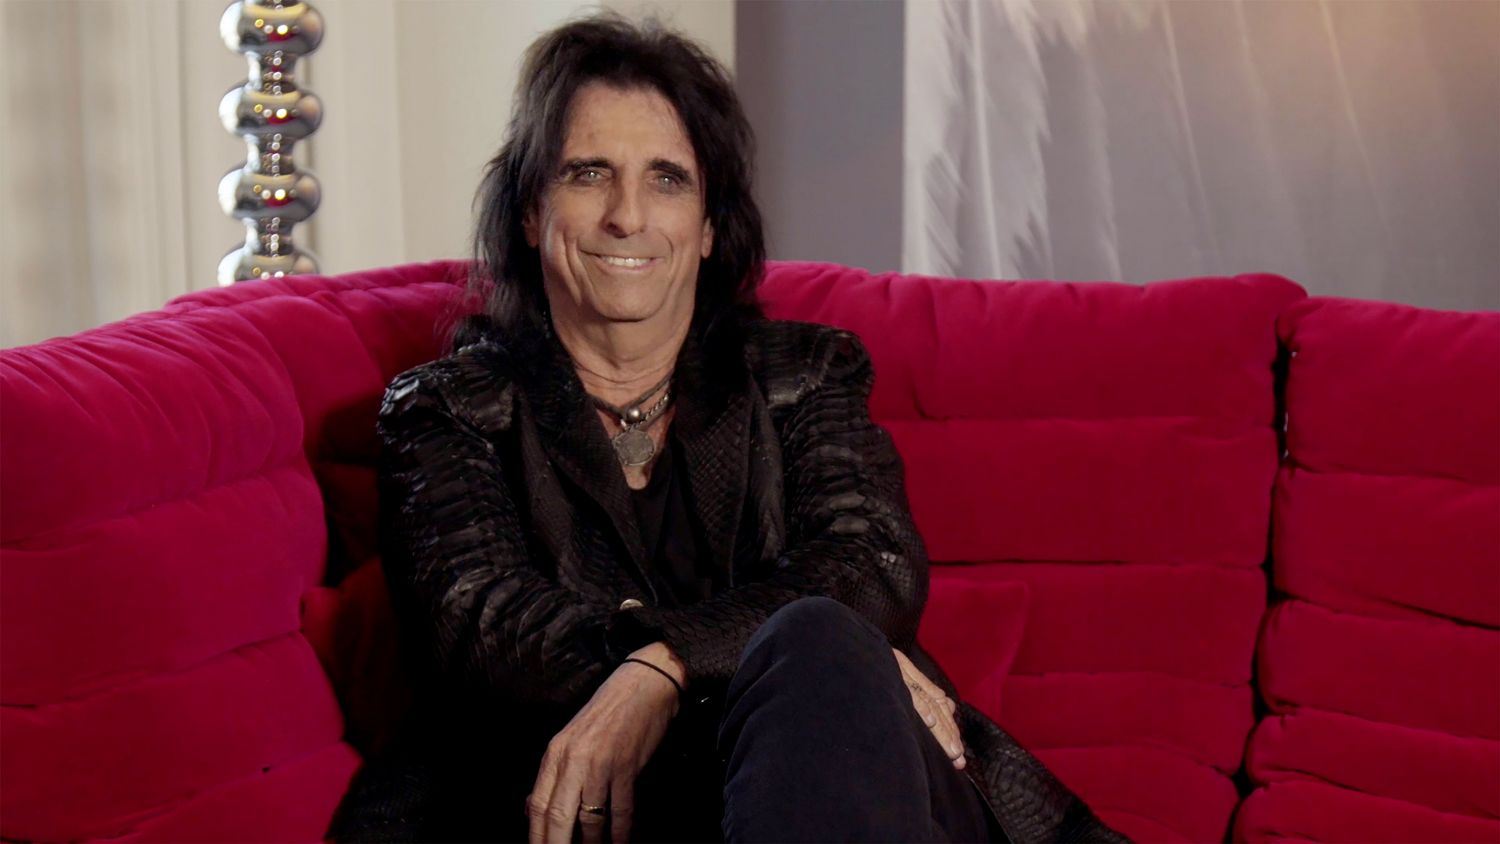 Alice Cooper in HOUSE OF CARDIN (Blue Finch Film Releasing)